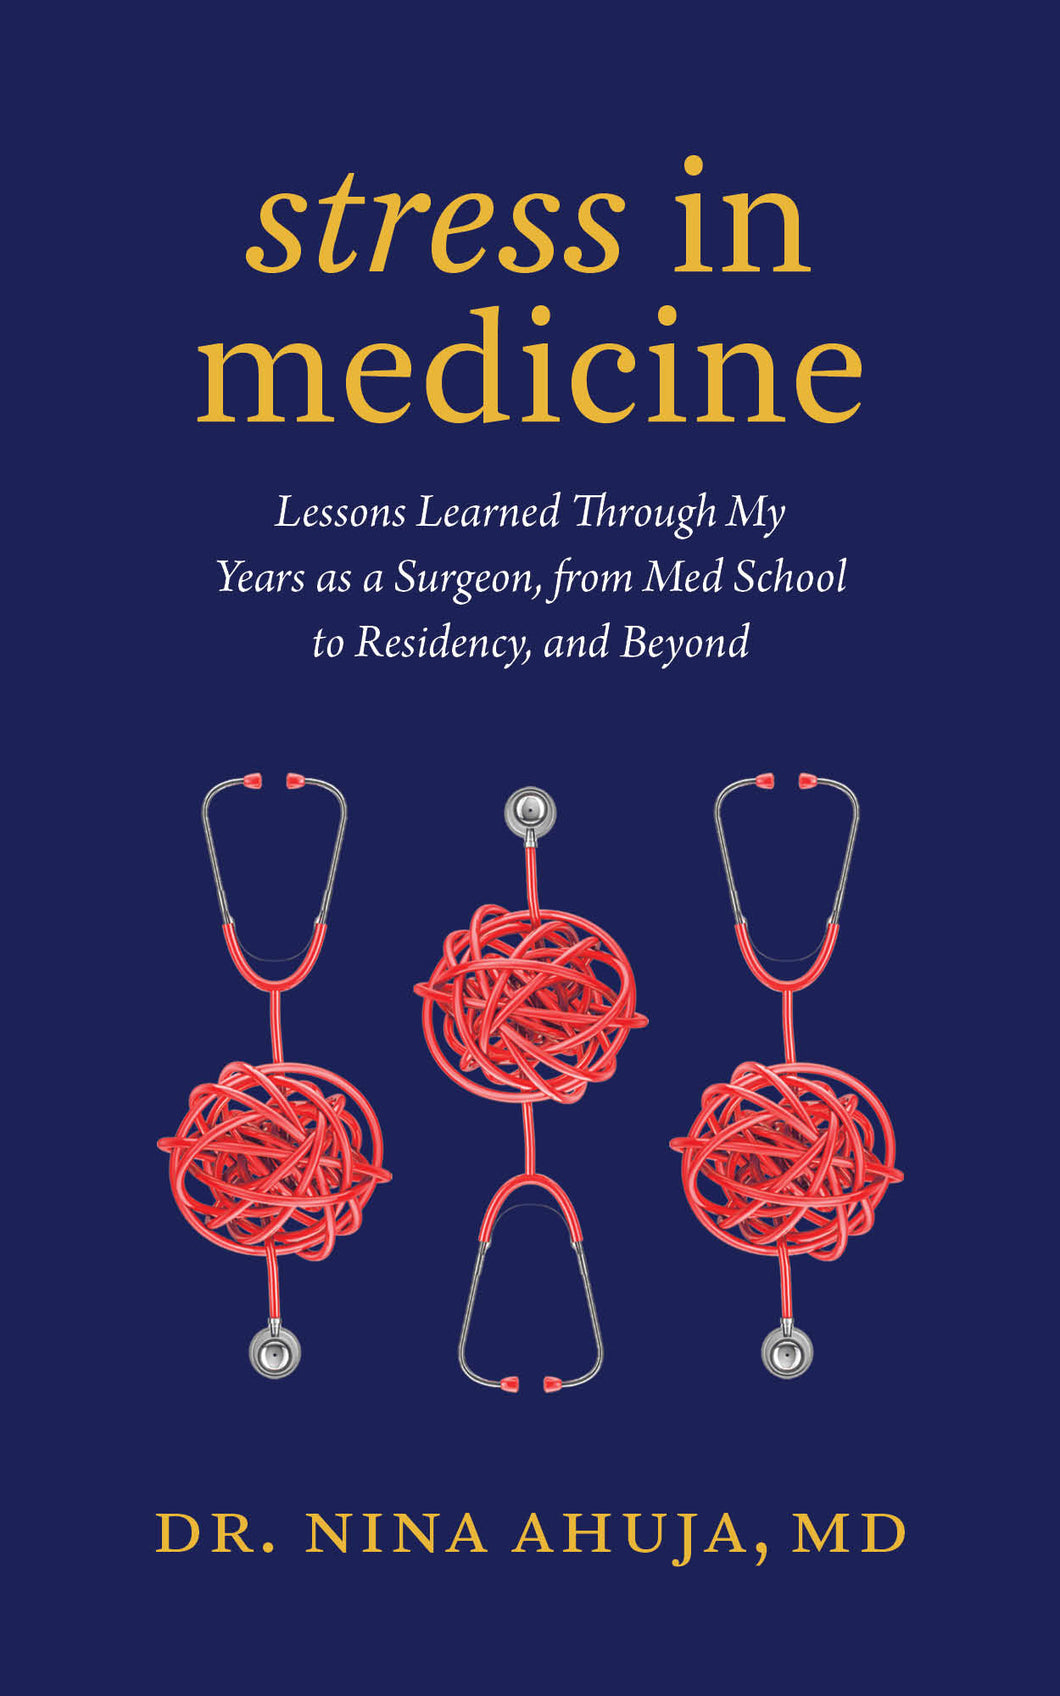 Stress in Medicine by Dr. Nina Ahuja [25+ COPIES]